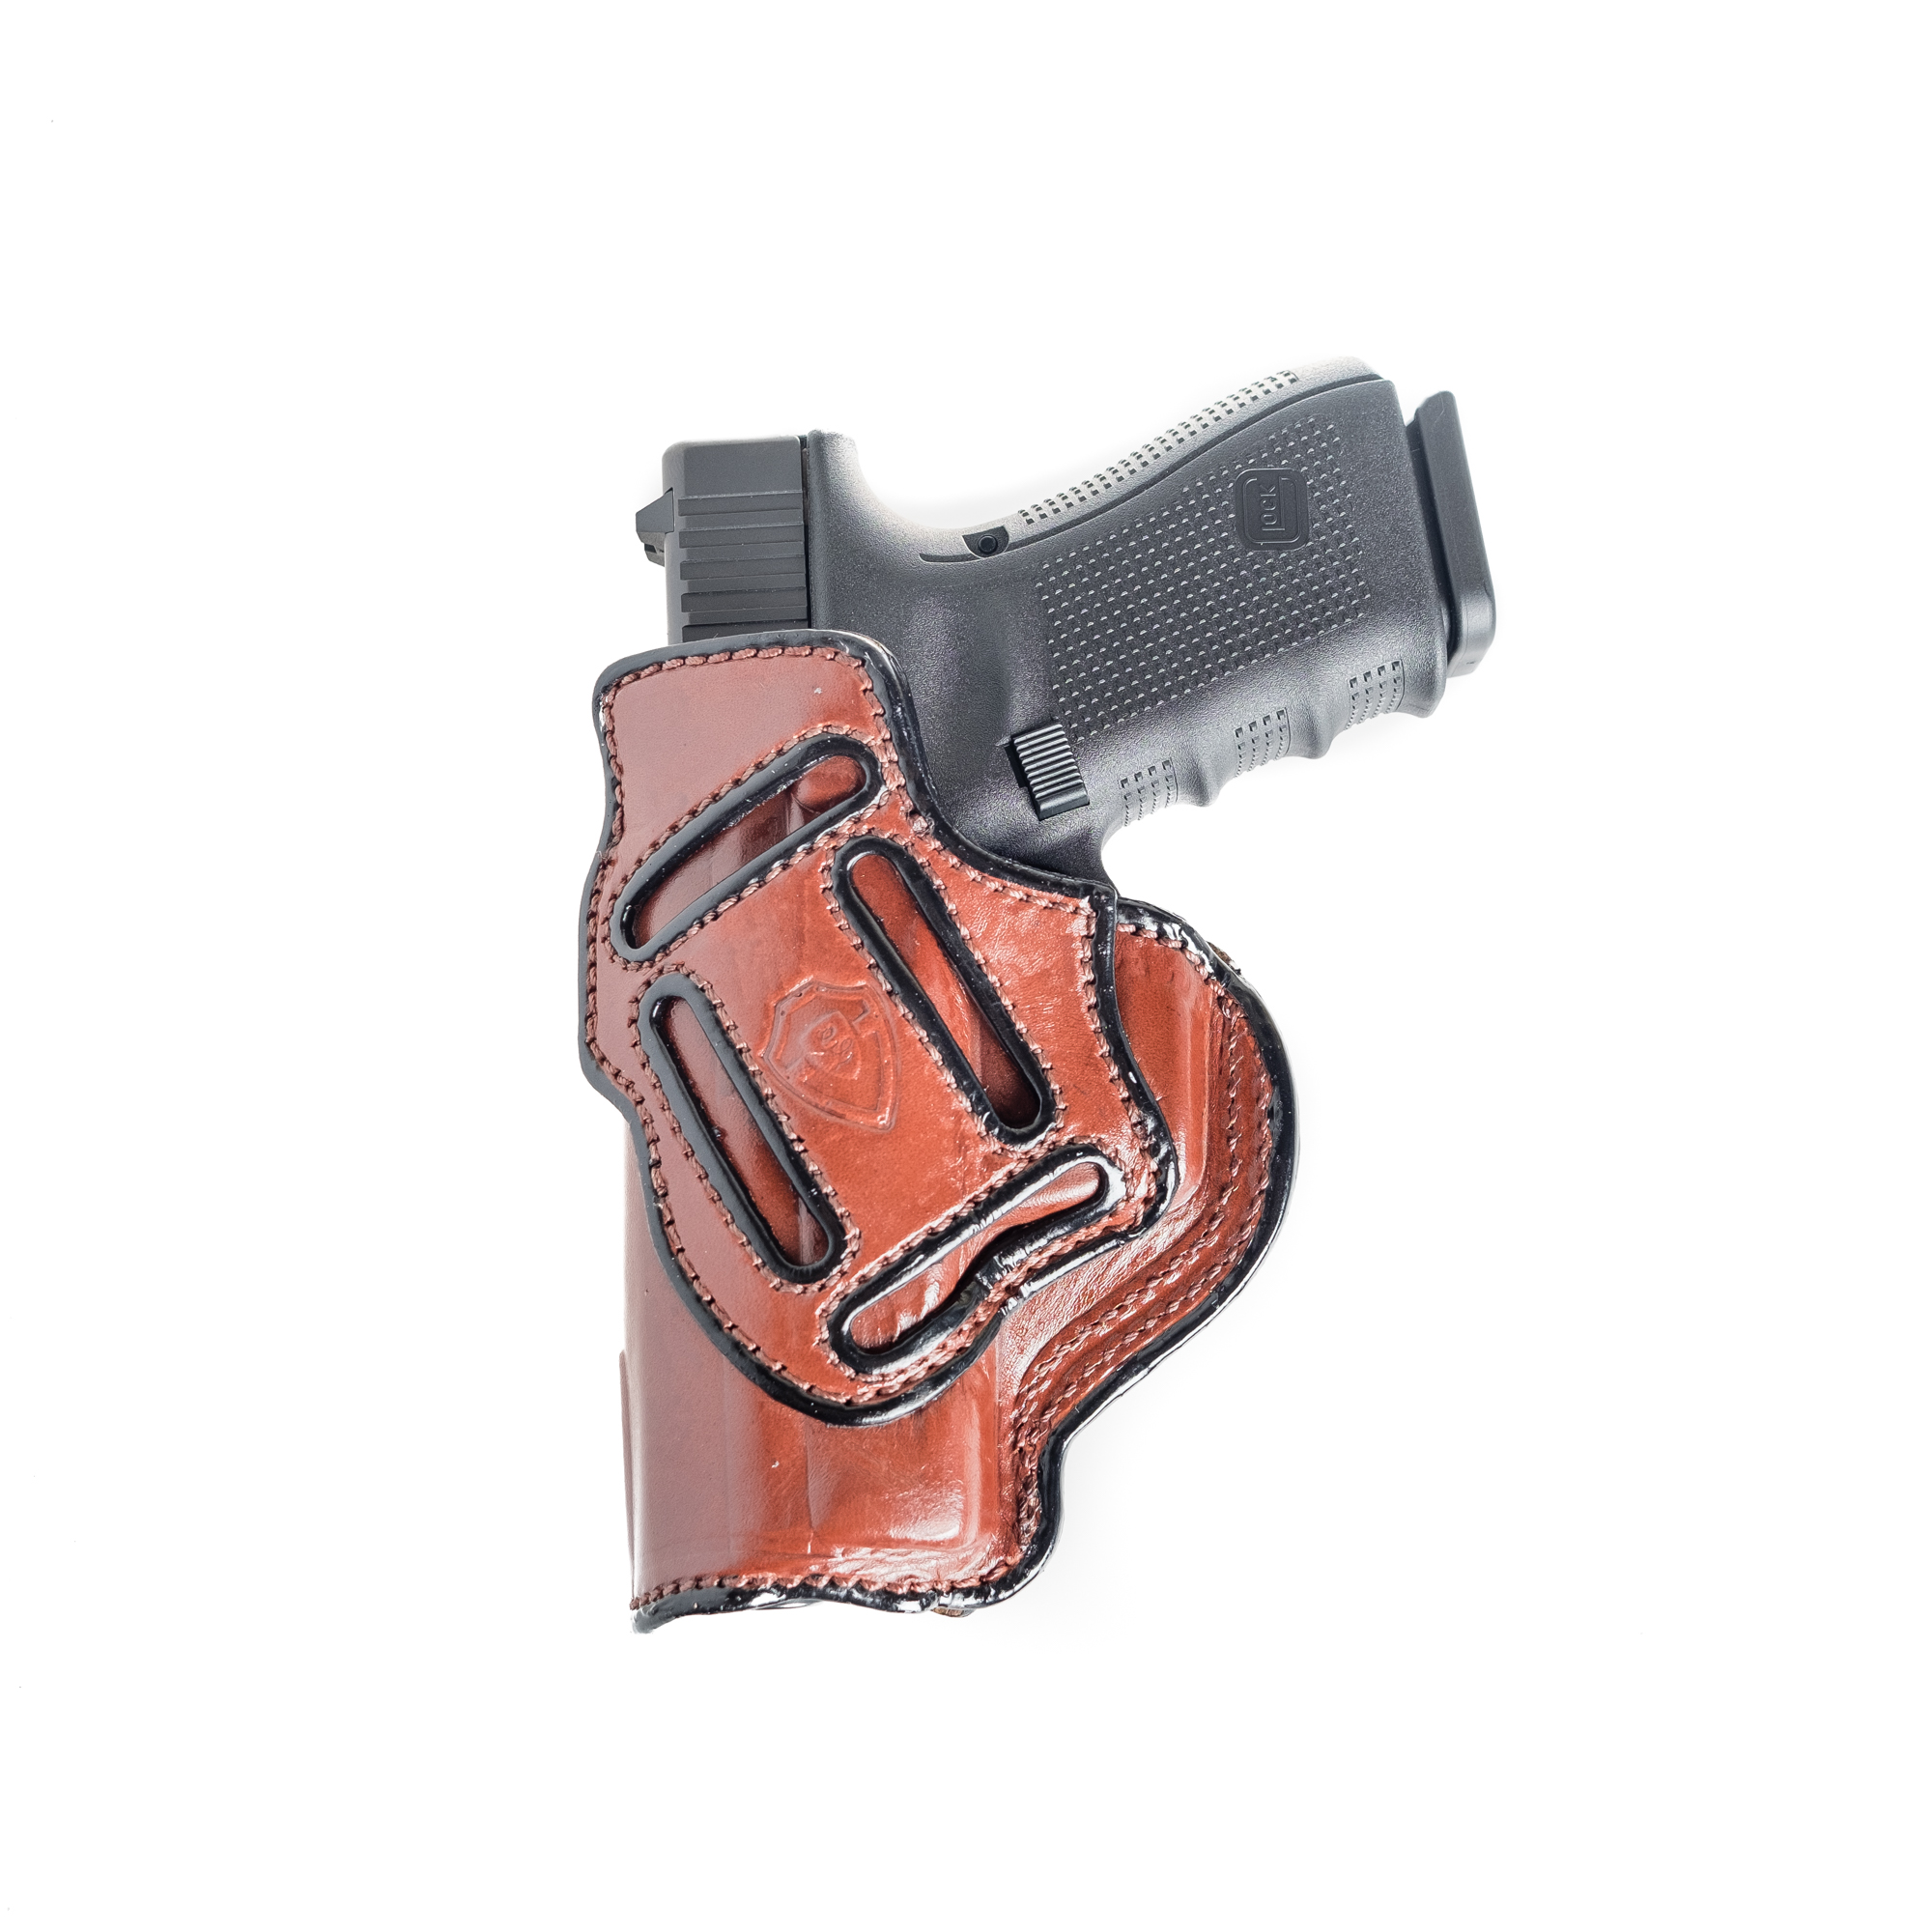 Details about MULTI-CARRY HOLSTER FOR BERETTA M9A1 & M9A3 IWB & OWB LEATHER  HOLSTER